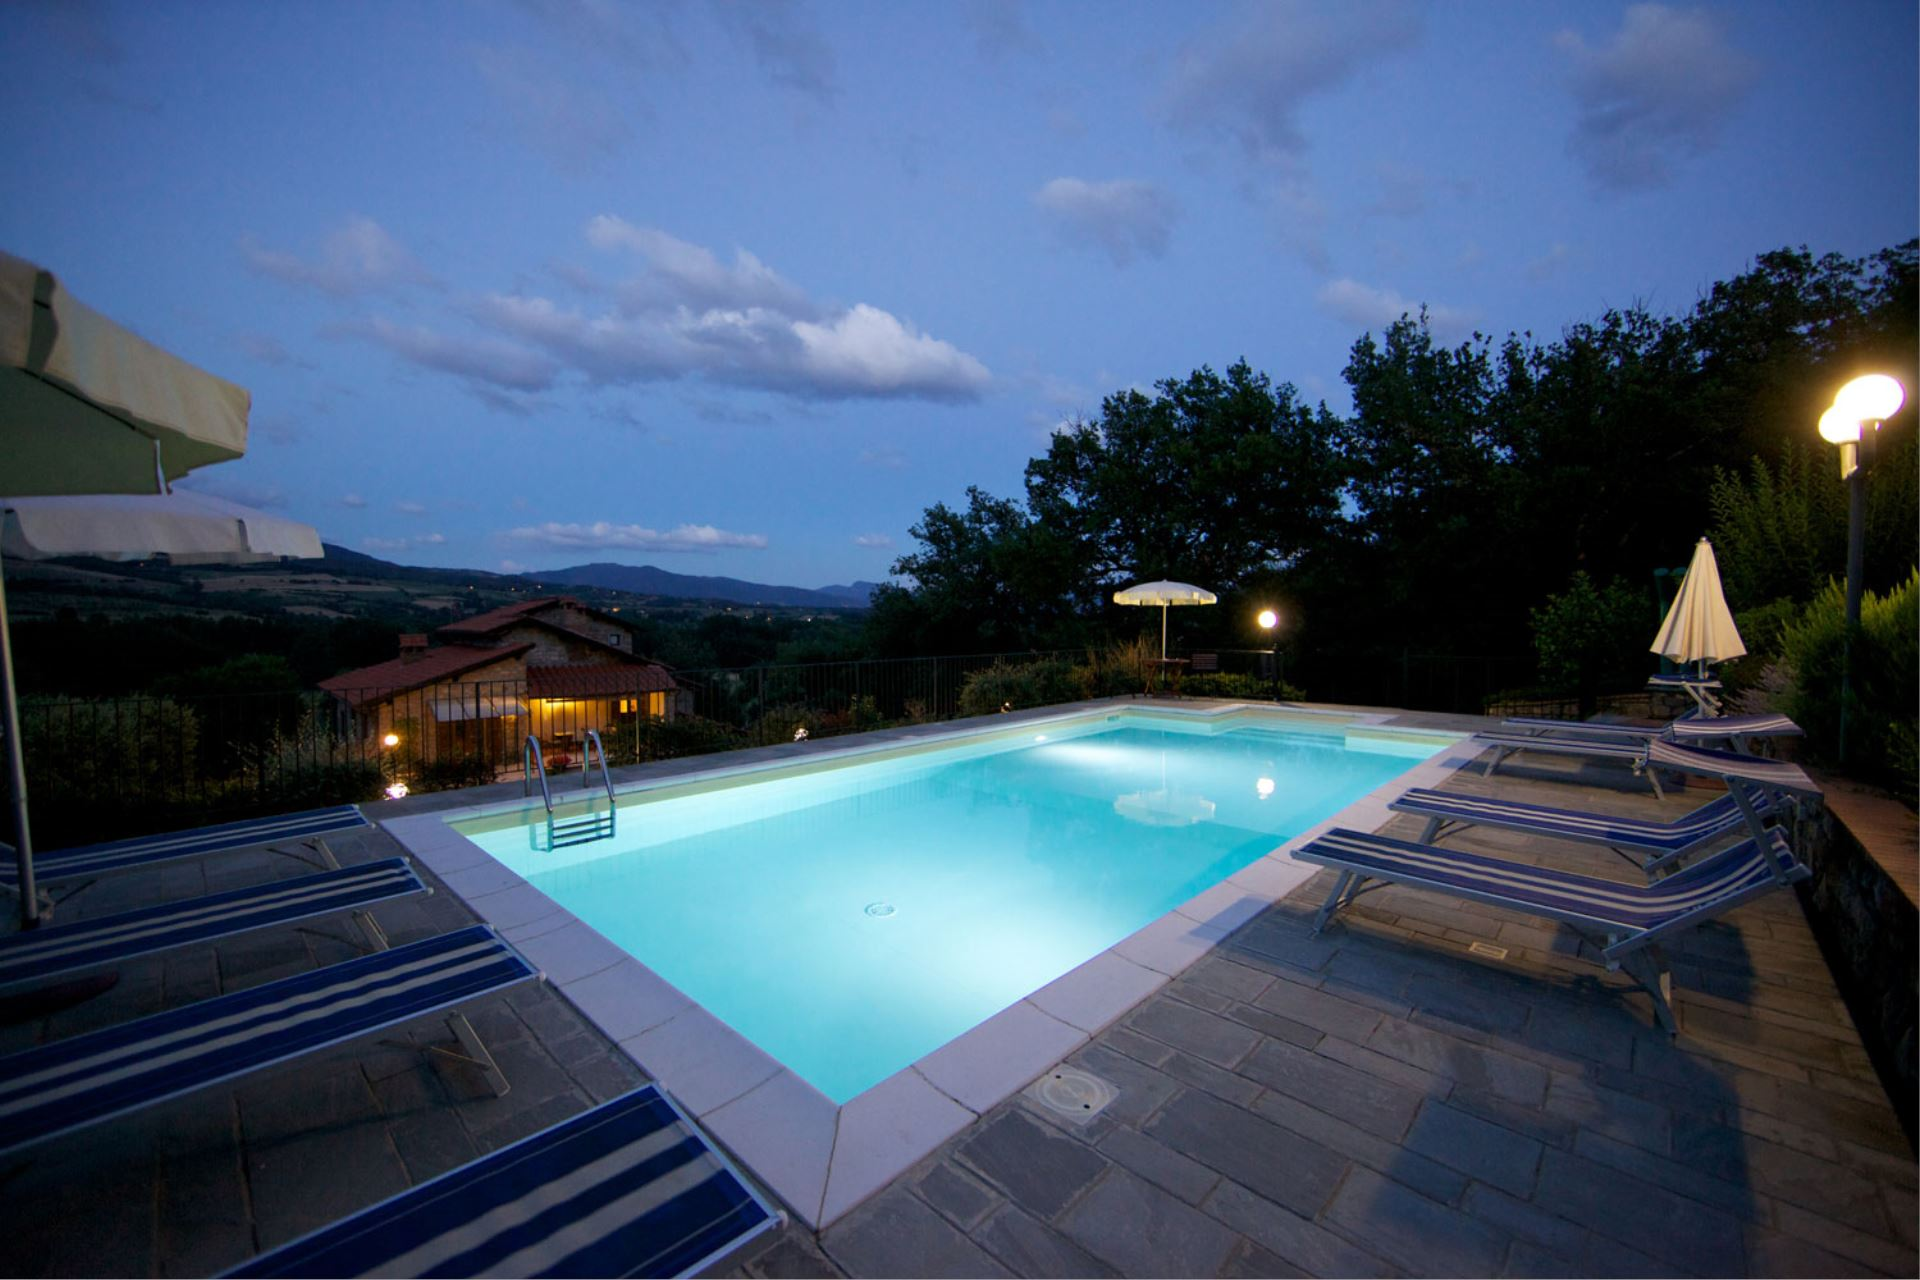 VILLAS WITH POOL PODERE VARLUNGA CASTEL SAN NICCOLÒ TOSCANA